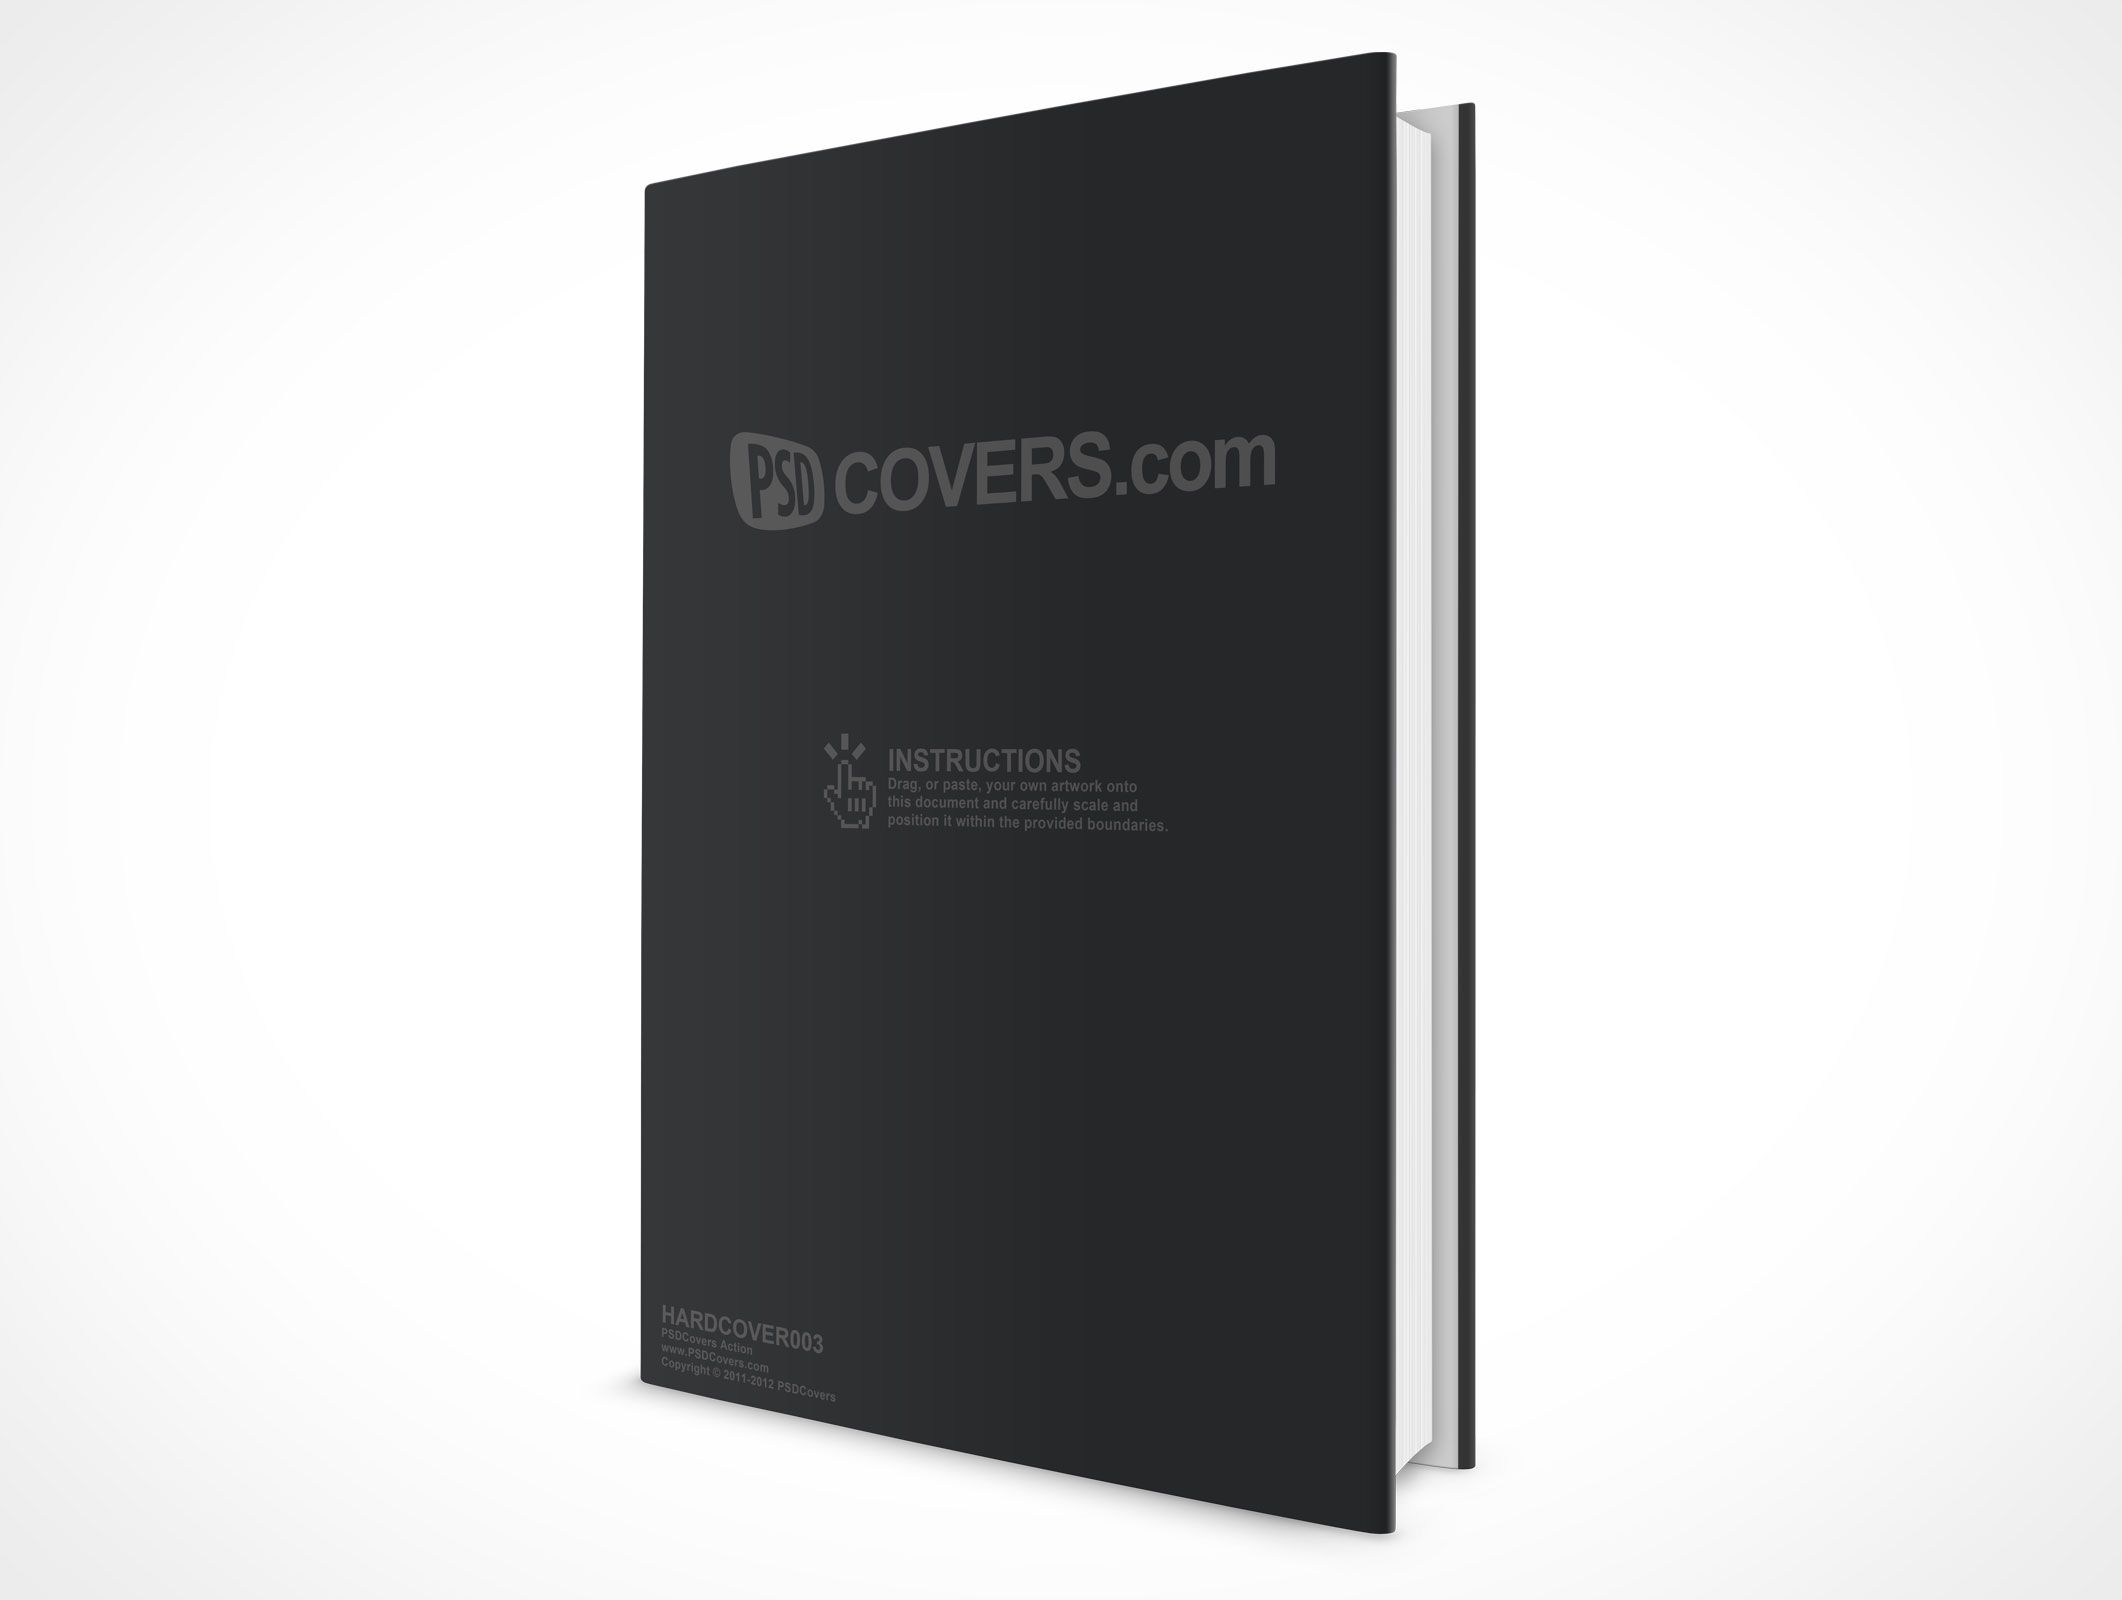 450 Page Hardcover Ebook Cover Ebook Cover Psd Photoshop Mockup